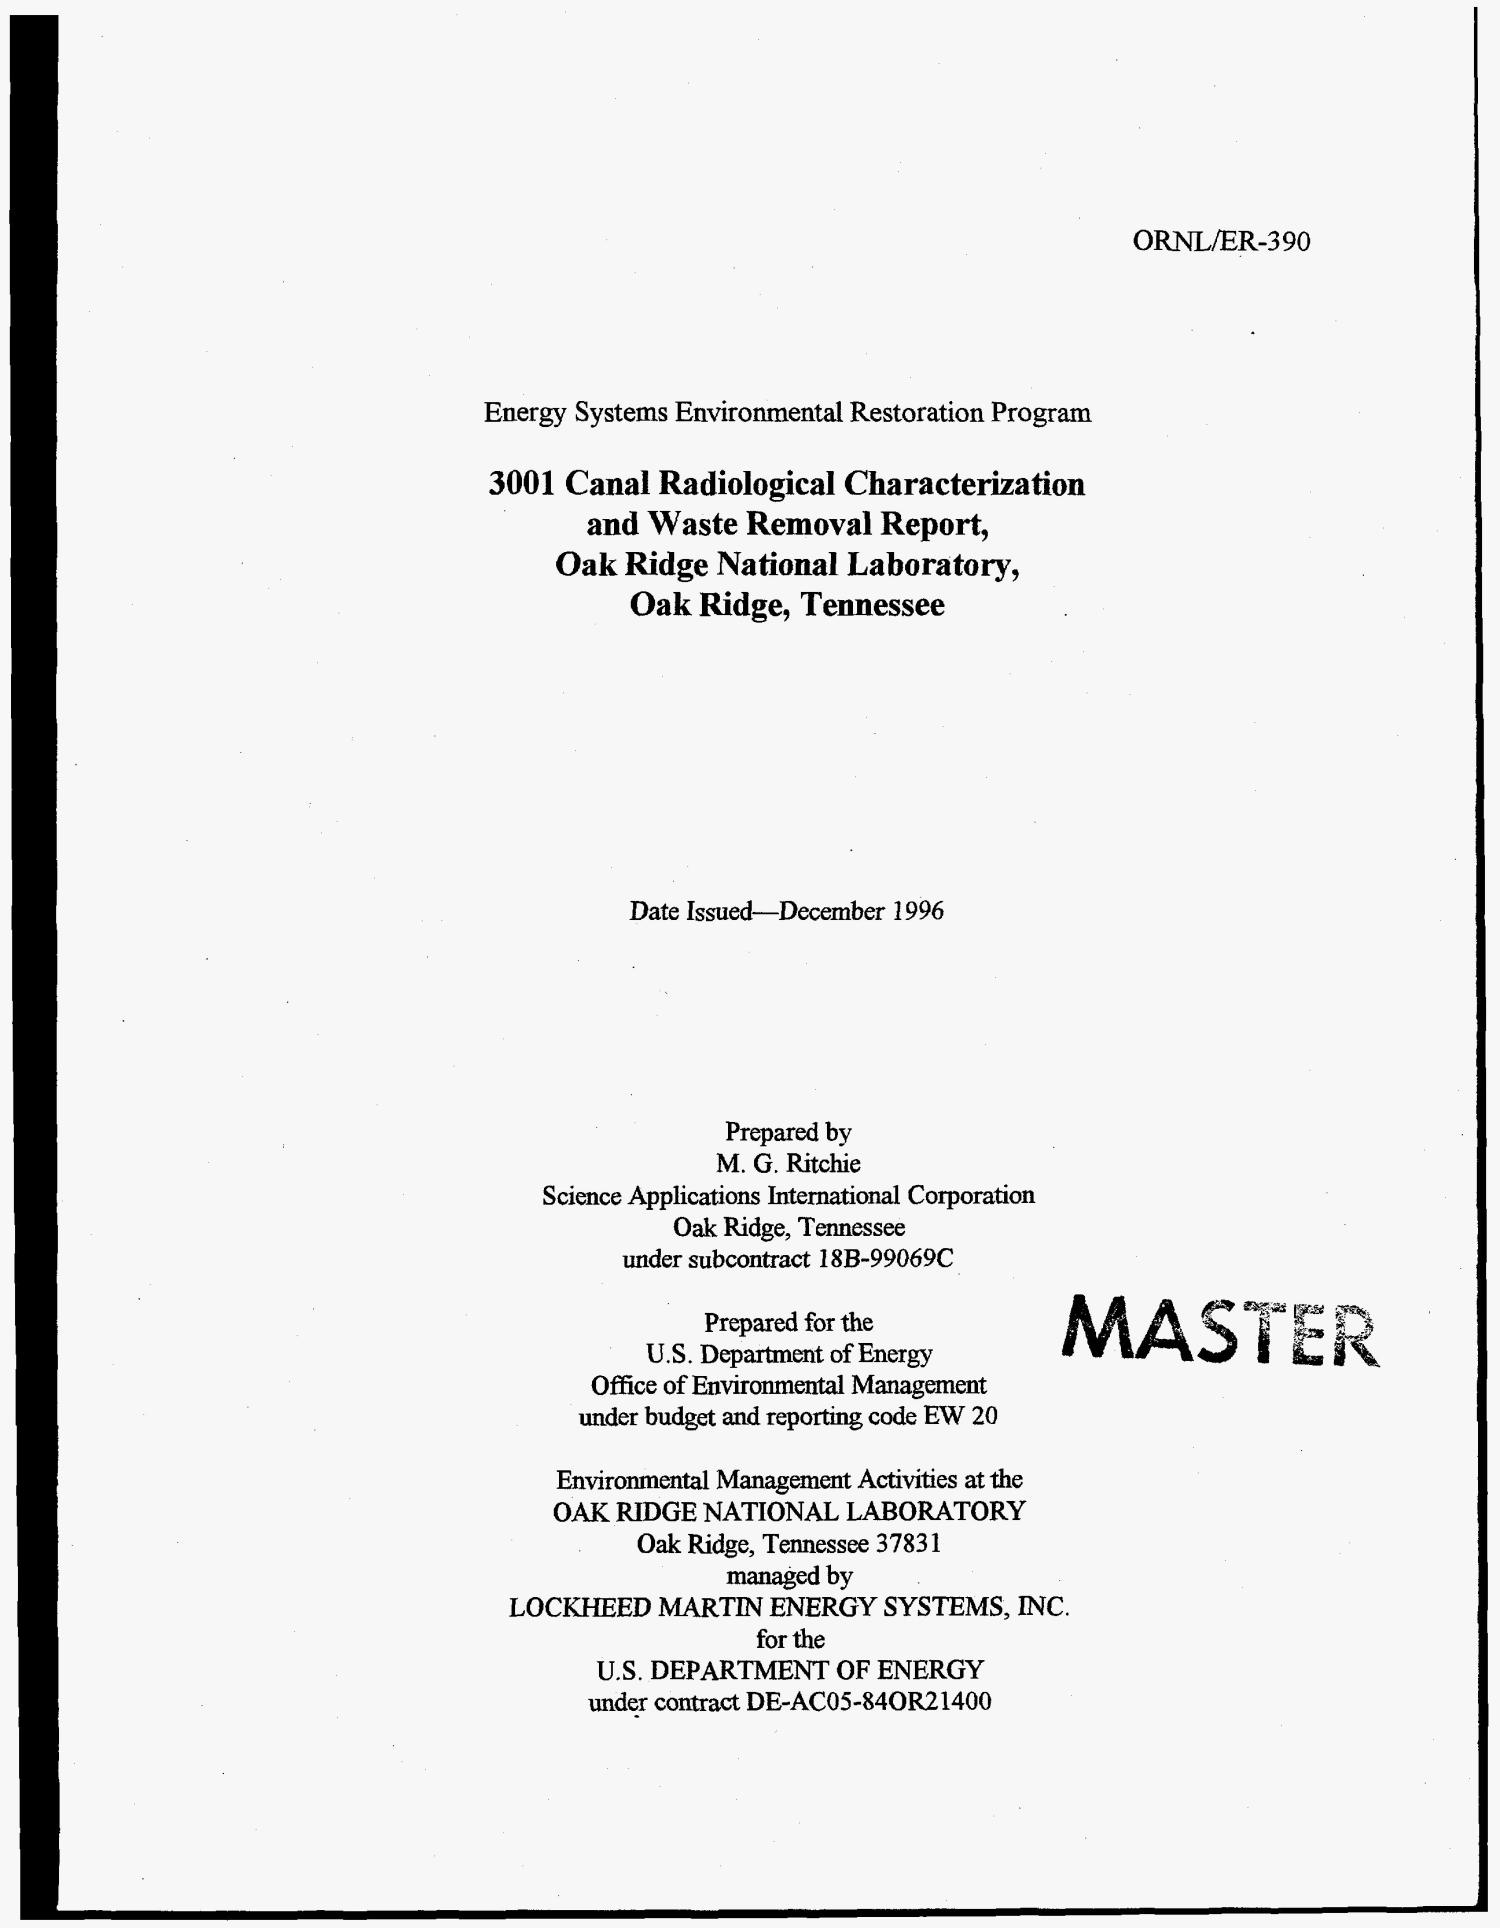 3001 canal radiological characterization and waste removal report, Oak Ridge National Laboratory, Oak Ridge, Tennessee                                                                                                      [Sequence #]: 3 of 26